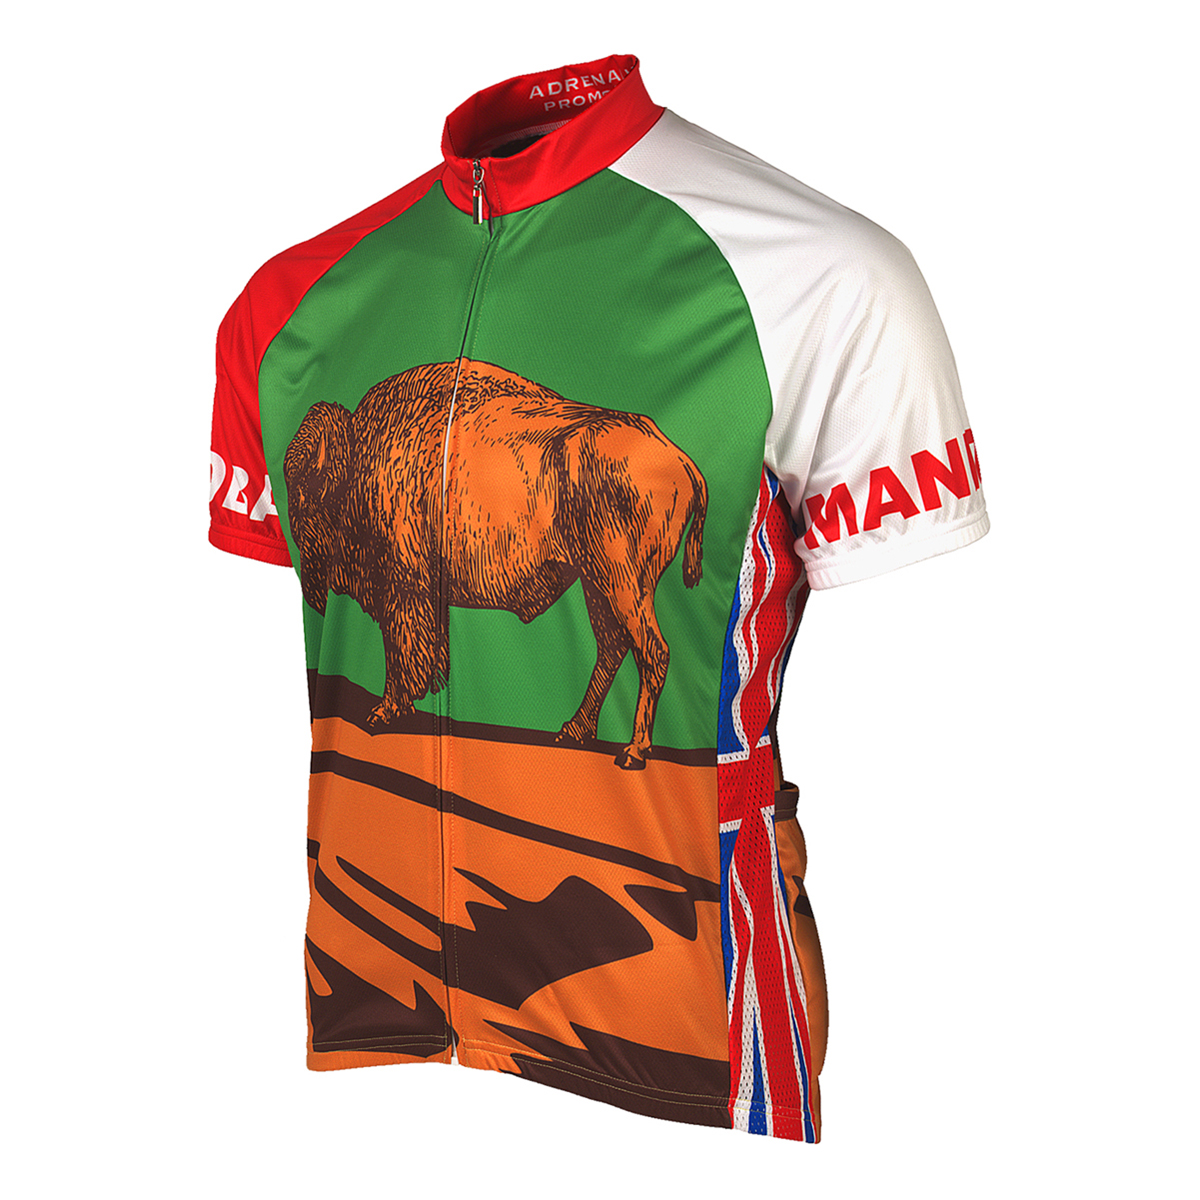 Adrenaline Promotions Manitoba Cycling Jersey